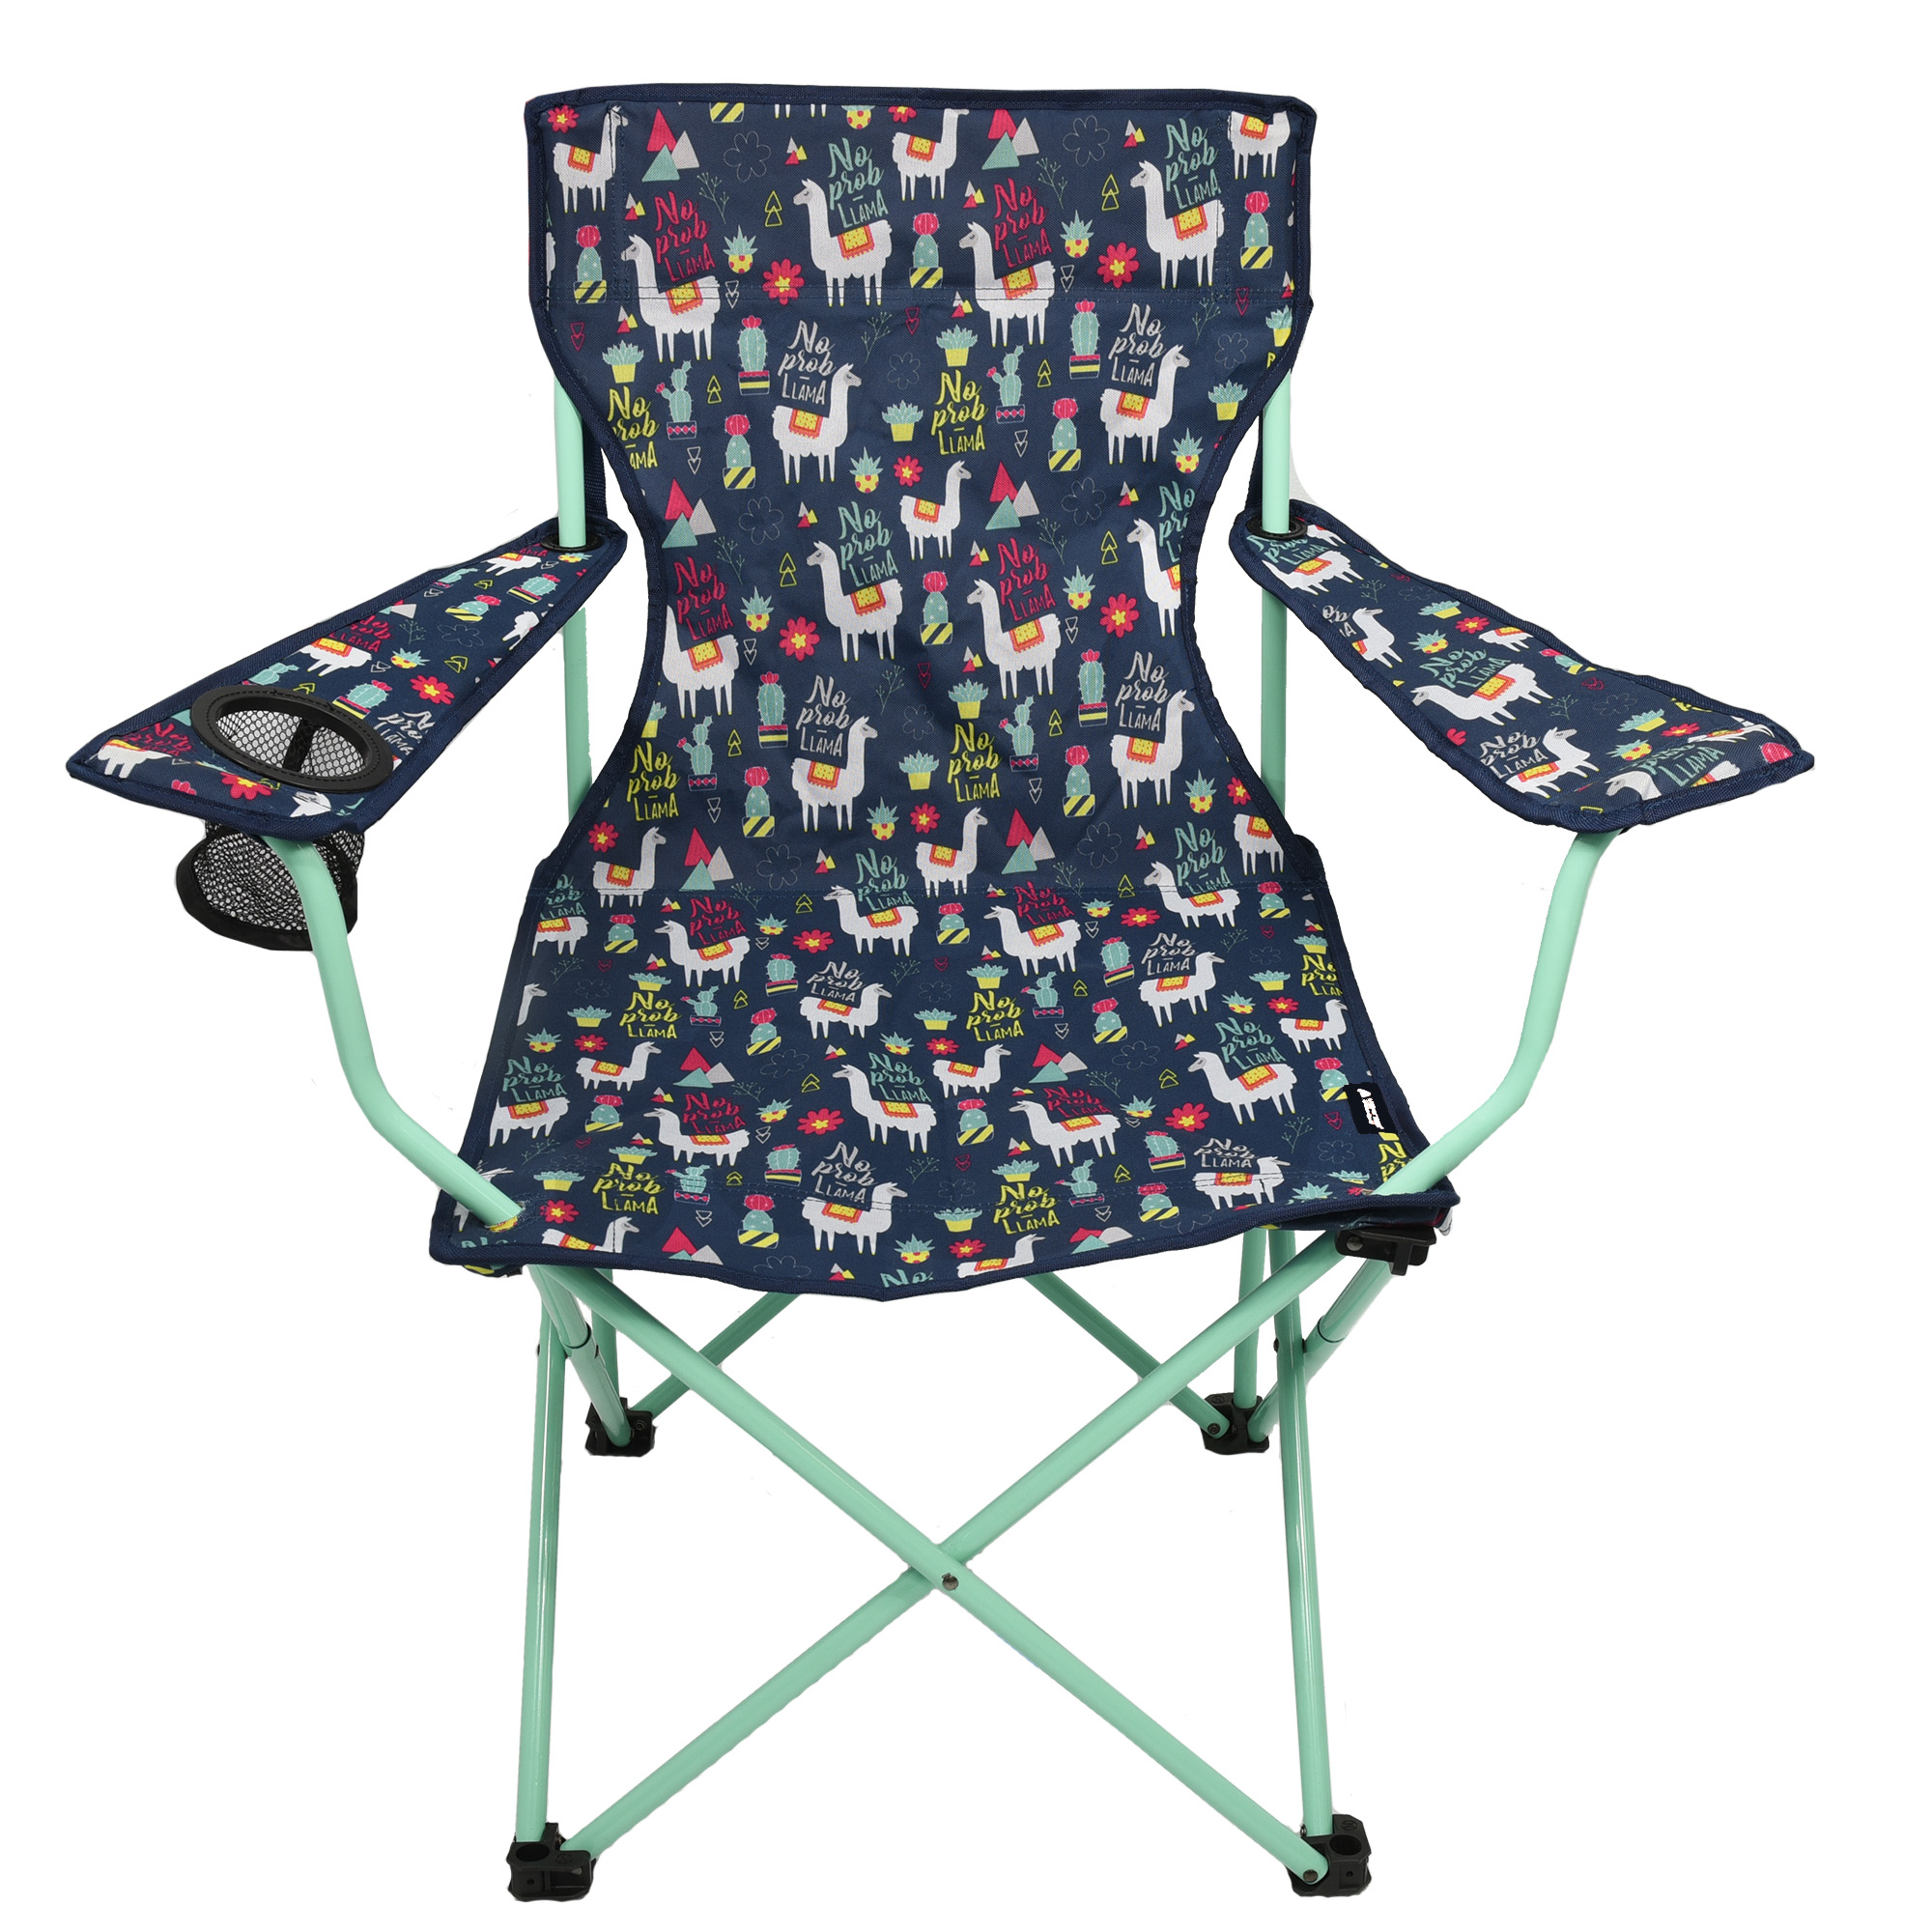 f22769480f6 Ozark Trail Llama Children s Camping Folding Quad Chair – BrickSeek